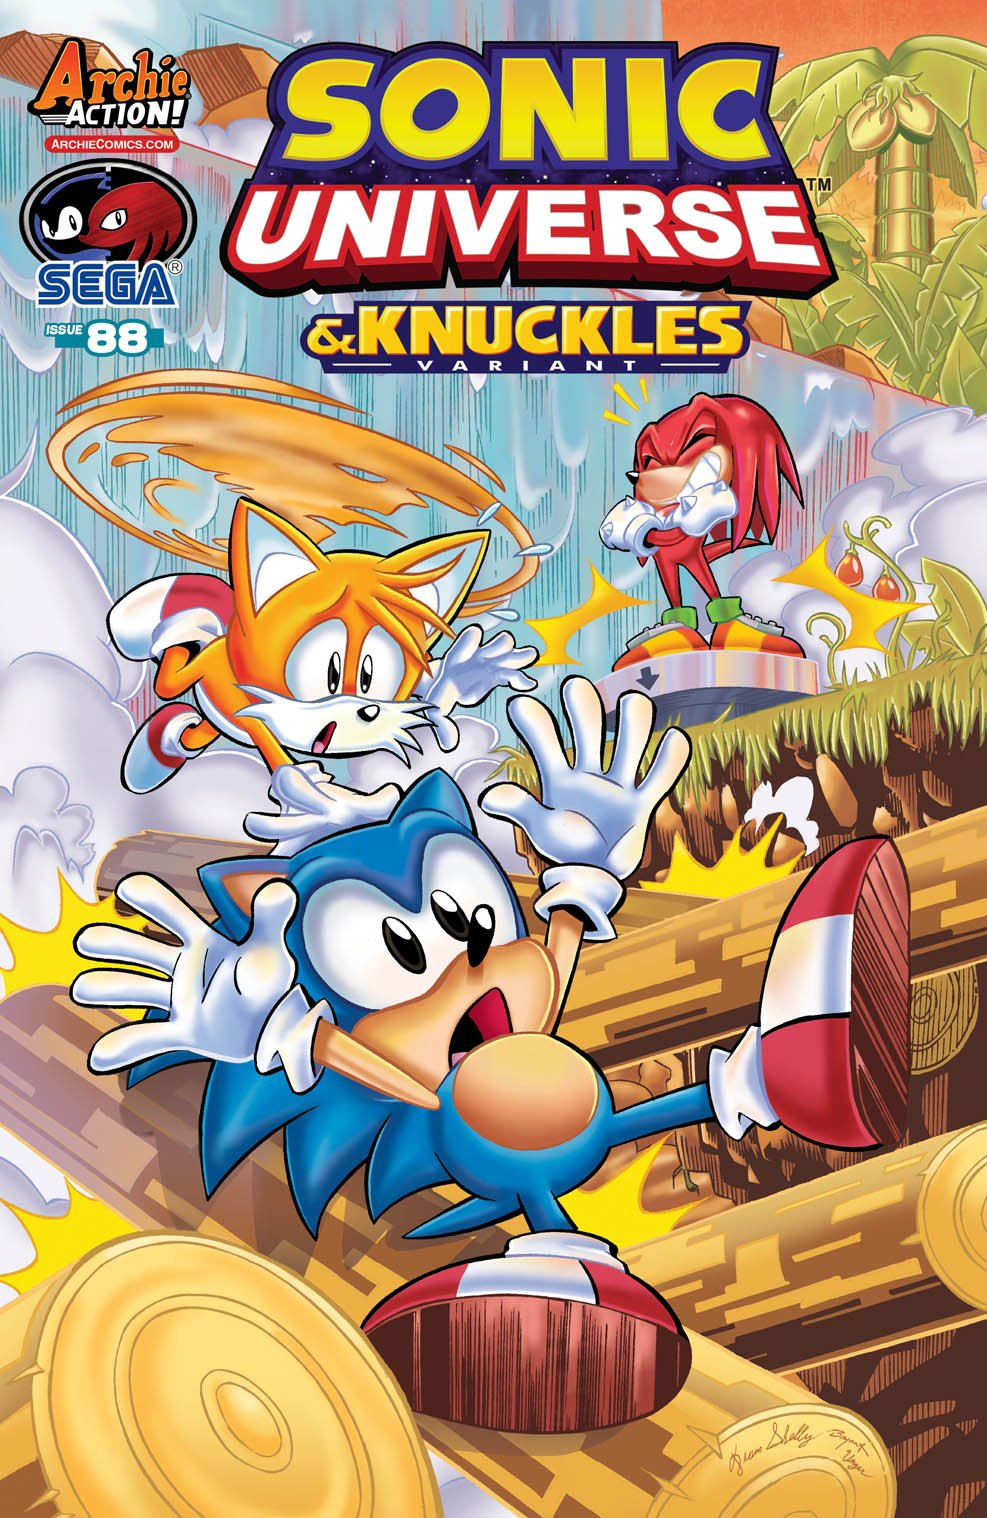 Sonic Universe 088 (October 2016) (& Knuckles variant)